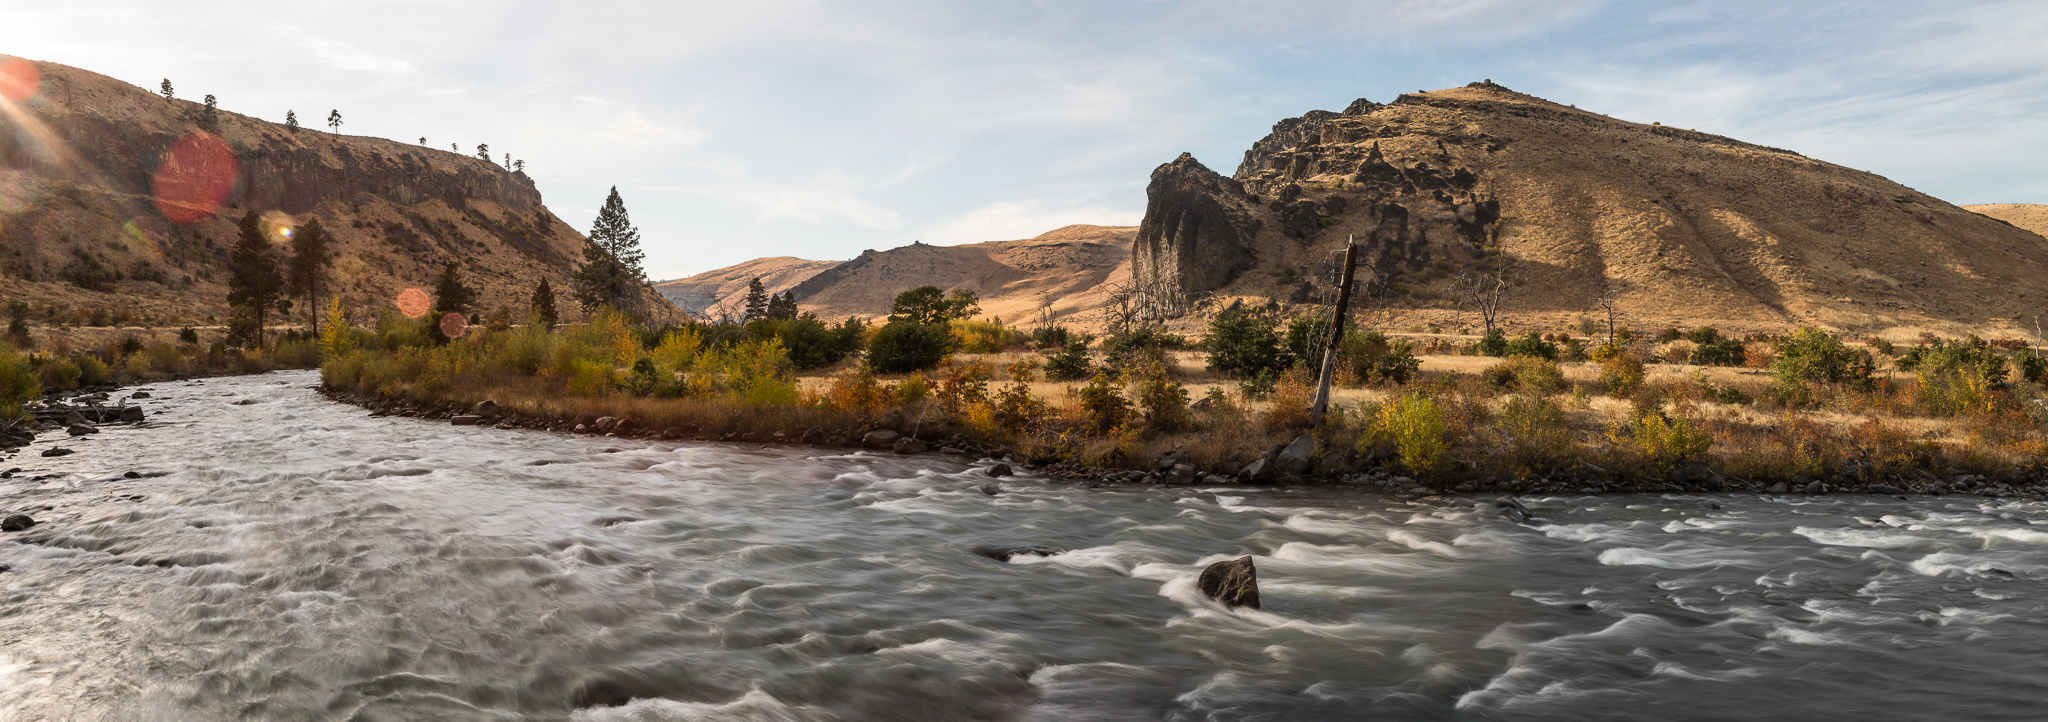 The river rushes through the Tieton Canyon as summer turns to fall near Yakima, WA. Photo by Cameron Karsten.